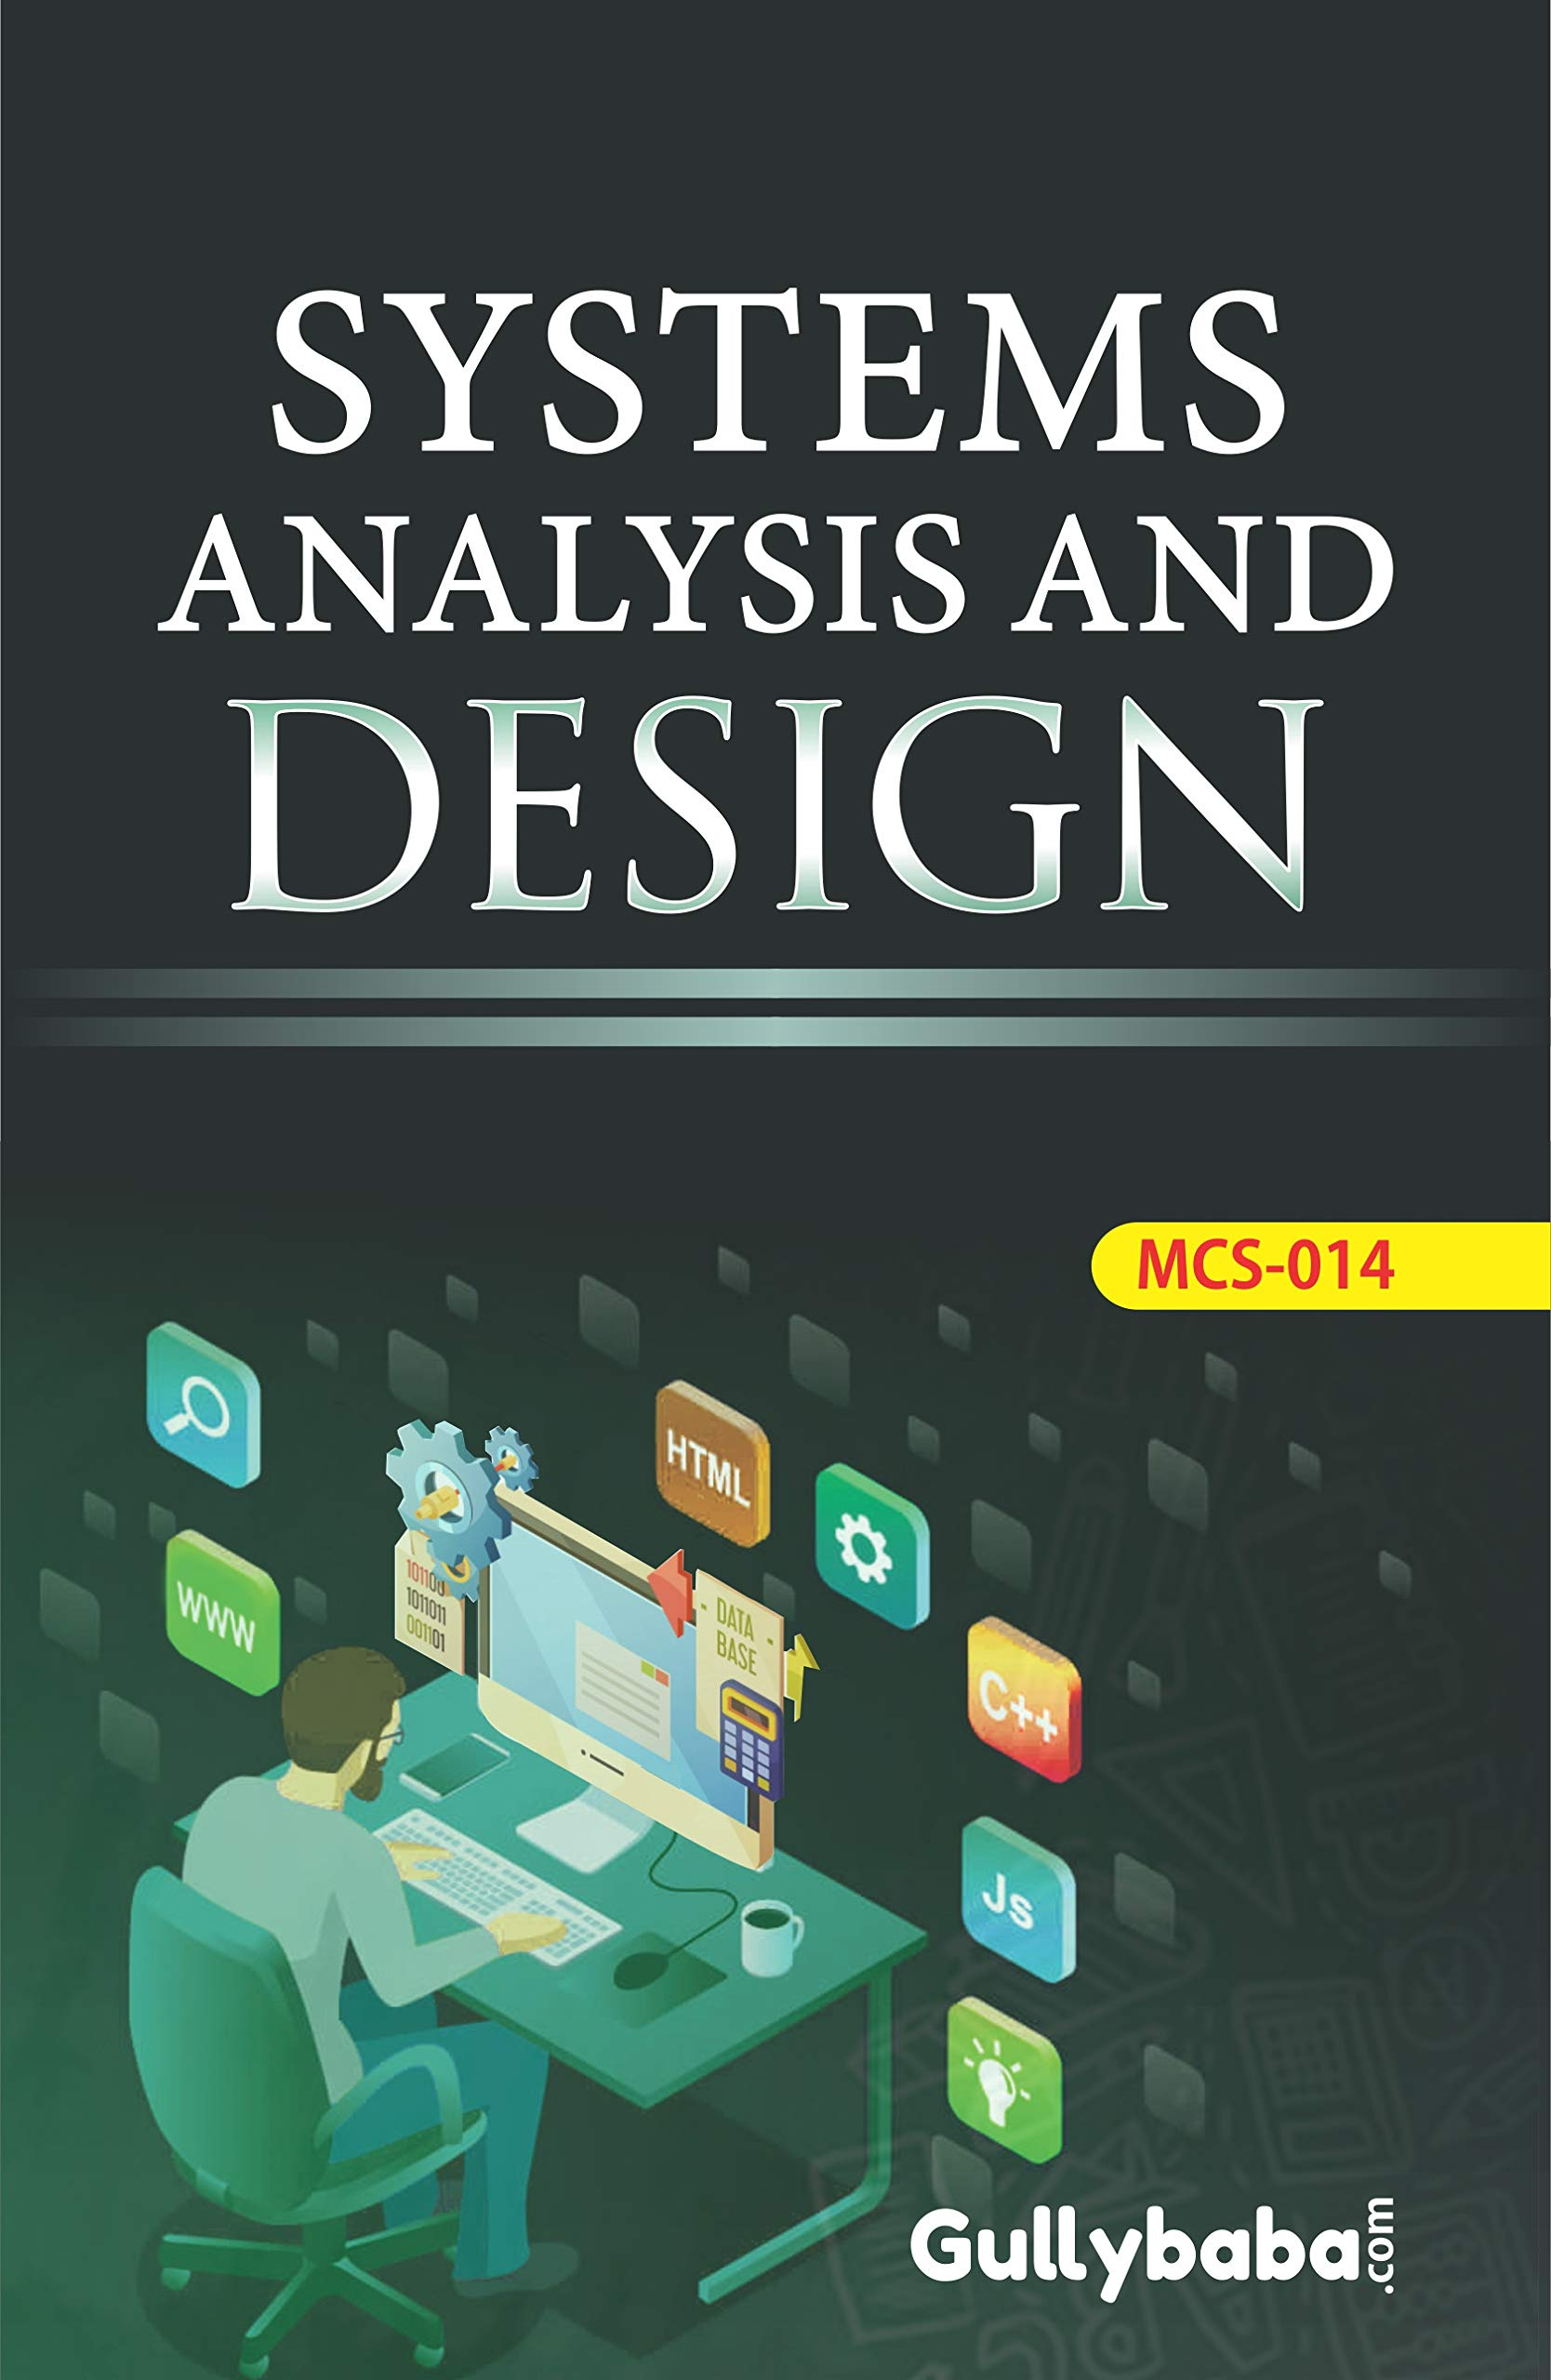 Buy Gullybaba Ignou Bca Latest Edition Mcs 014 Systems Analysis And Design In English Medium Ignou Help Books With Solved Sample Question Papers And Important Exam Notes Book Online At Low Prices In